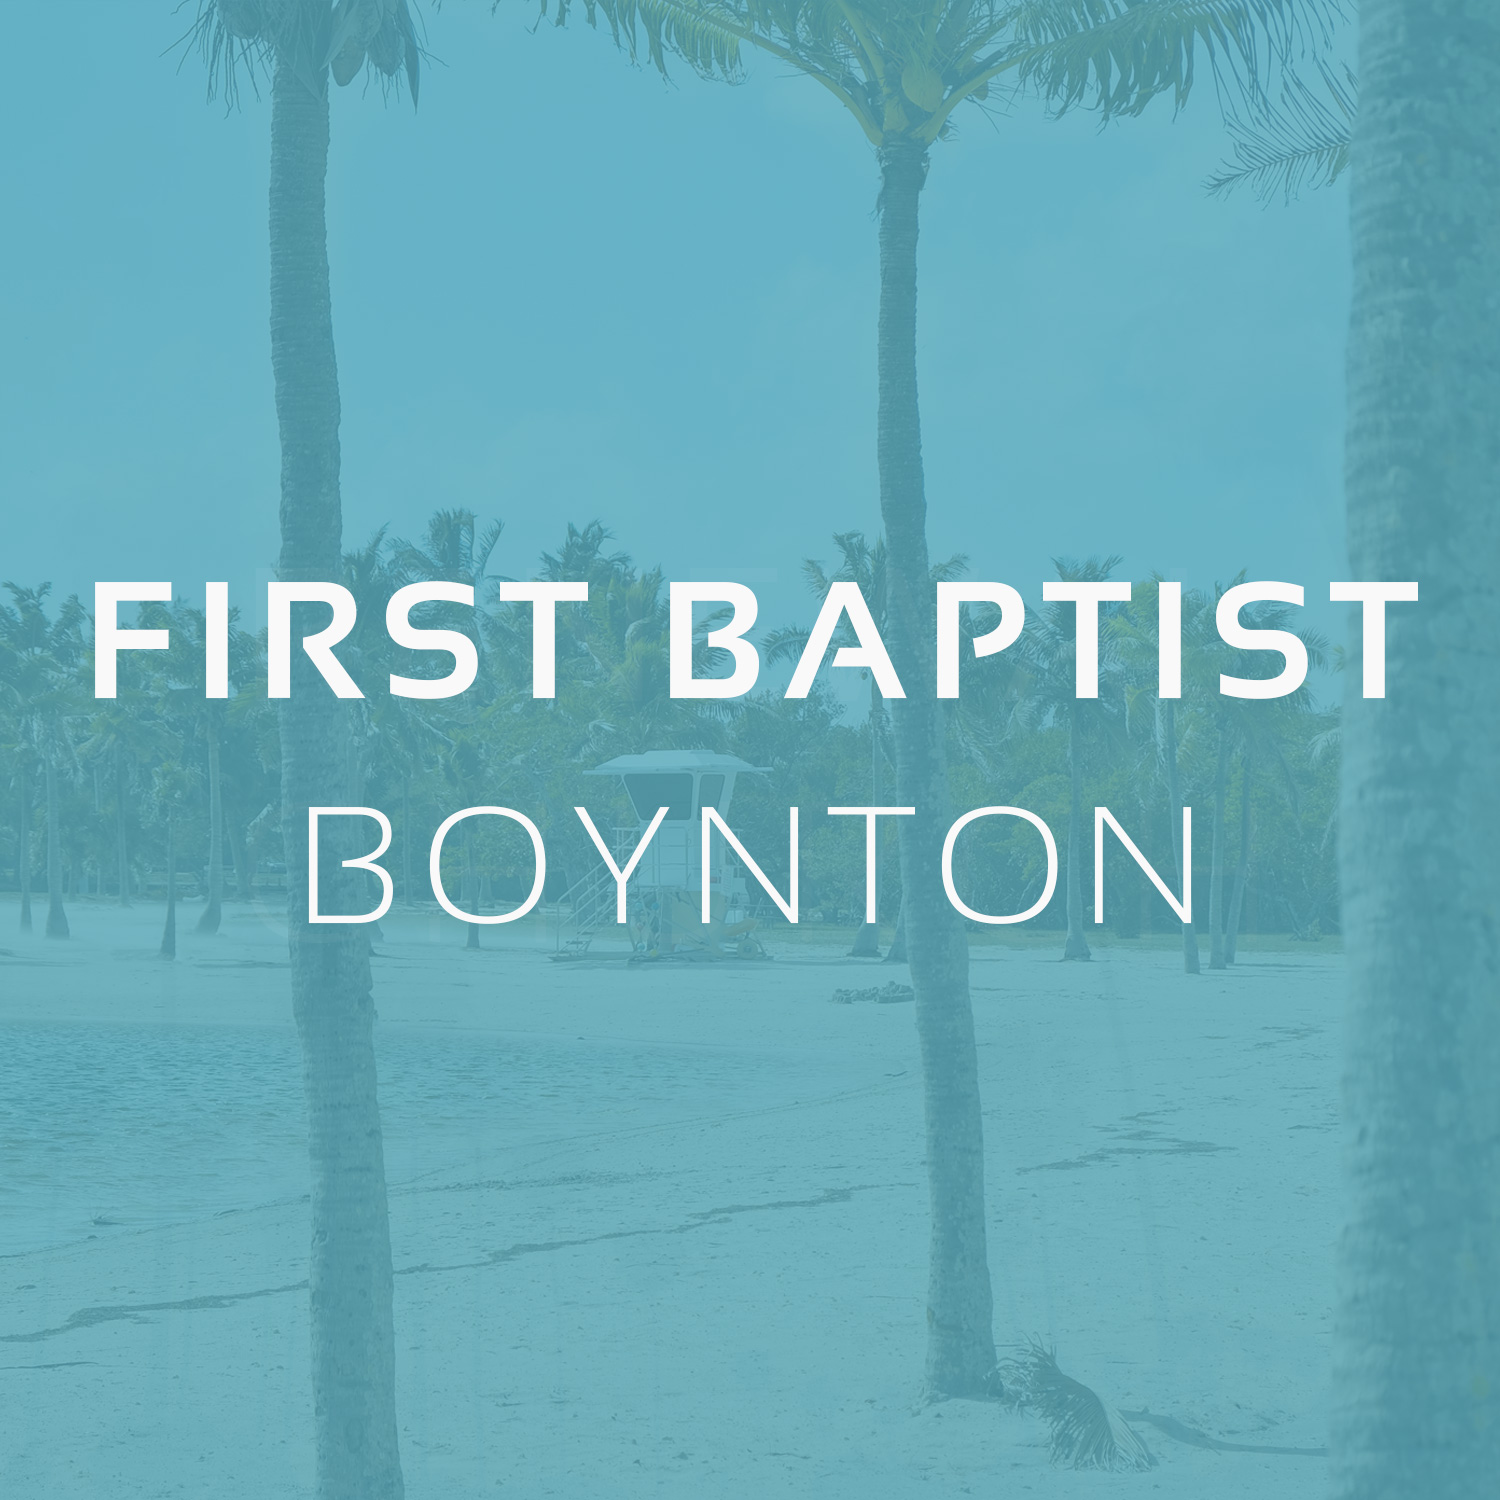 FBC Boynton Beach is a part of our Miami region and currently led by Pastor Buz McNutt who is transitioning towards retirement. Keith Baker currently serves as their Worship Pastor and will help lead things through their transition.